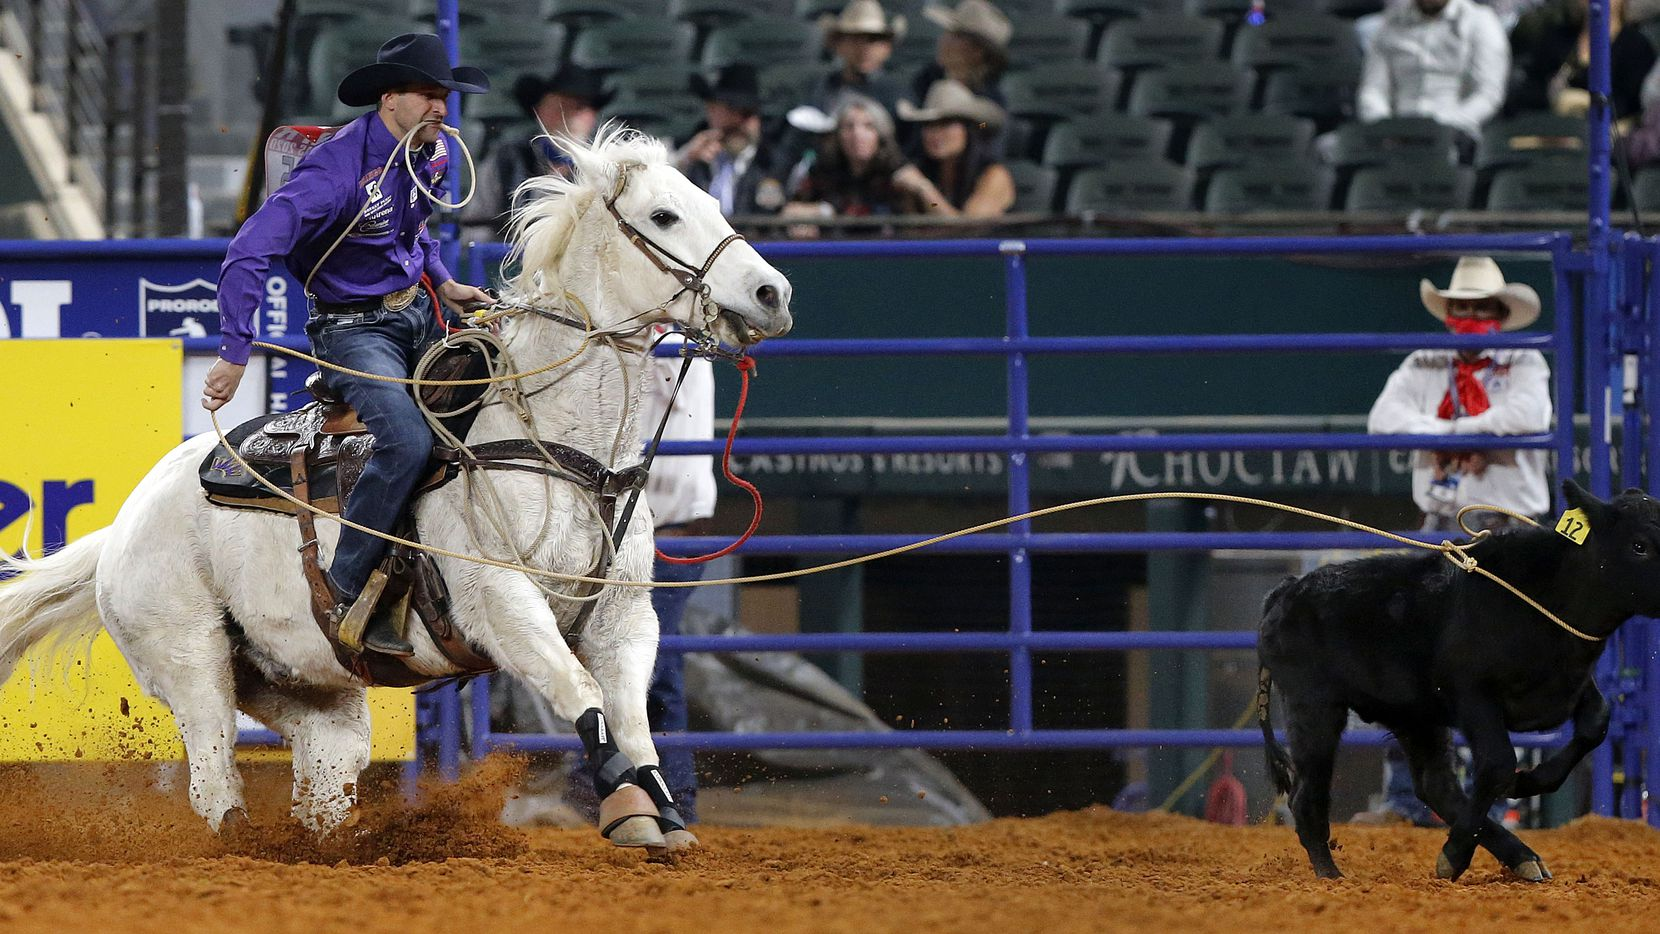 Tie-Down Roper Shane Hanchey of Sulpher, La., lassoes a calf in Round 10 of the National Finals Rodeo at Globe Life Field in Arlington, Dec. 12, 2020. Our editorial board thinks North Texas should tie up a contract with the rodeo as soon as possible. (Tom Fox/The Dallas Morning News)